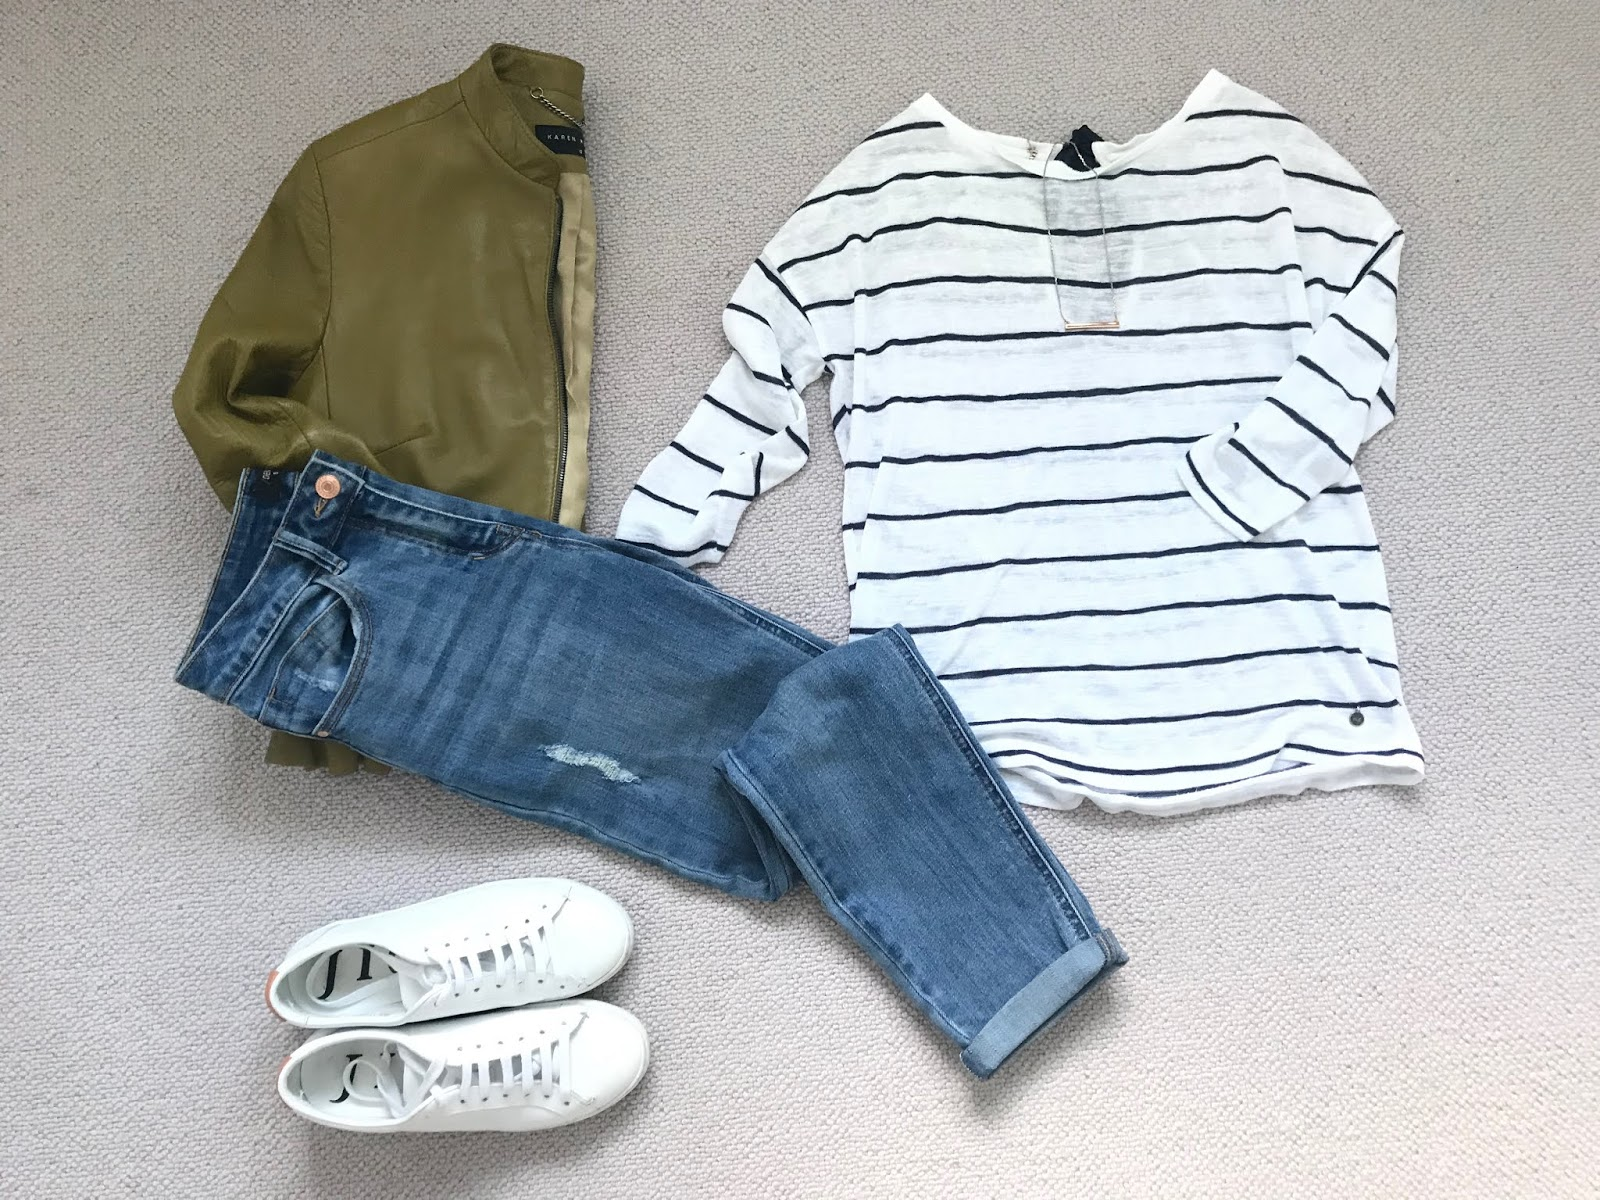 Spring outfit featuring a striped top